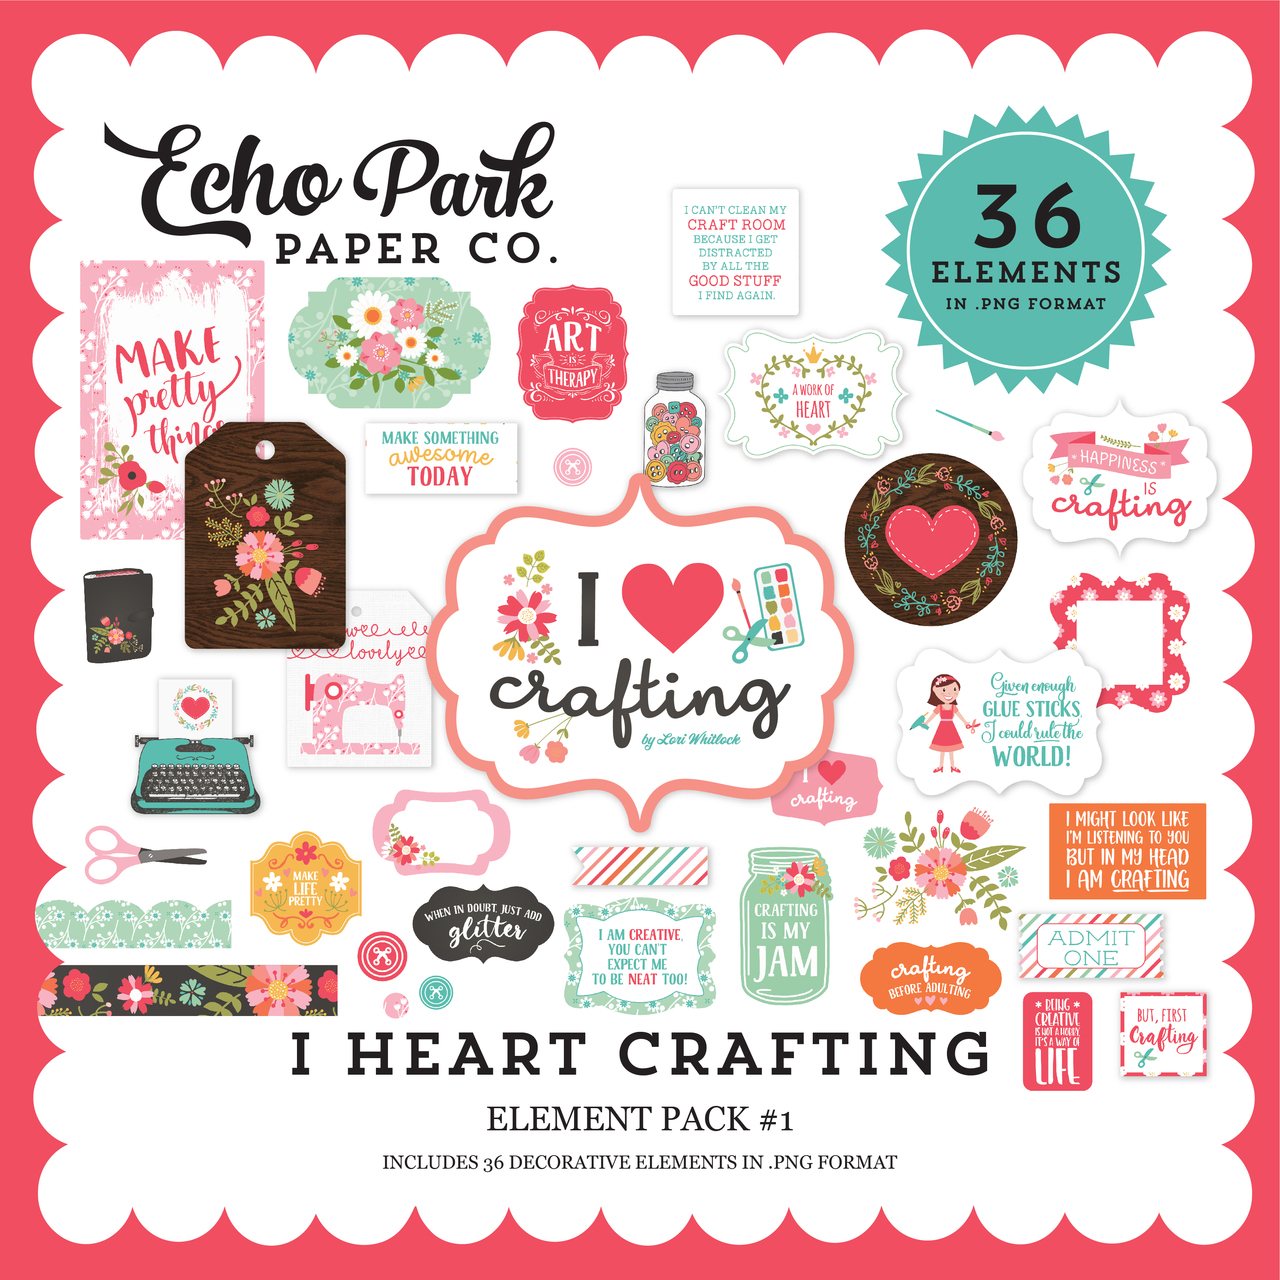 I Heart Crafting Element Pack #1